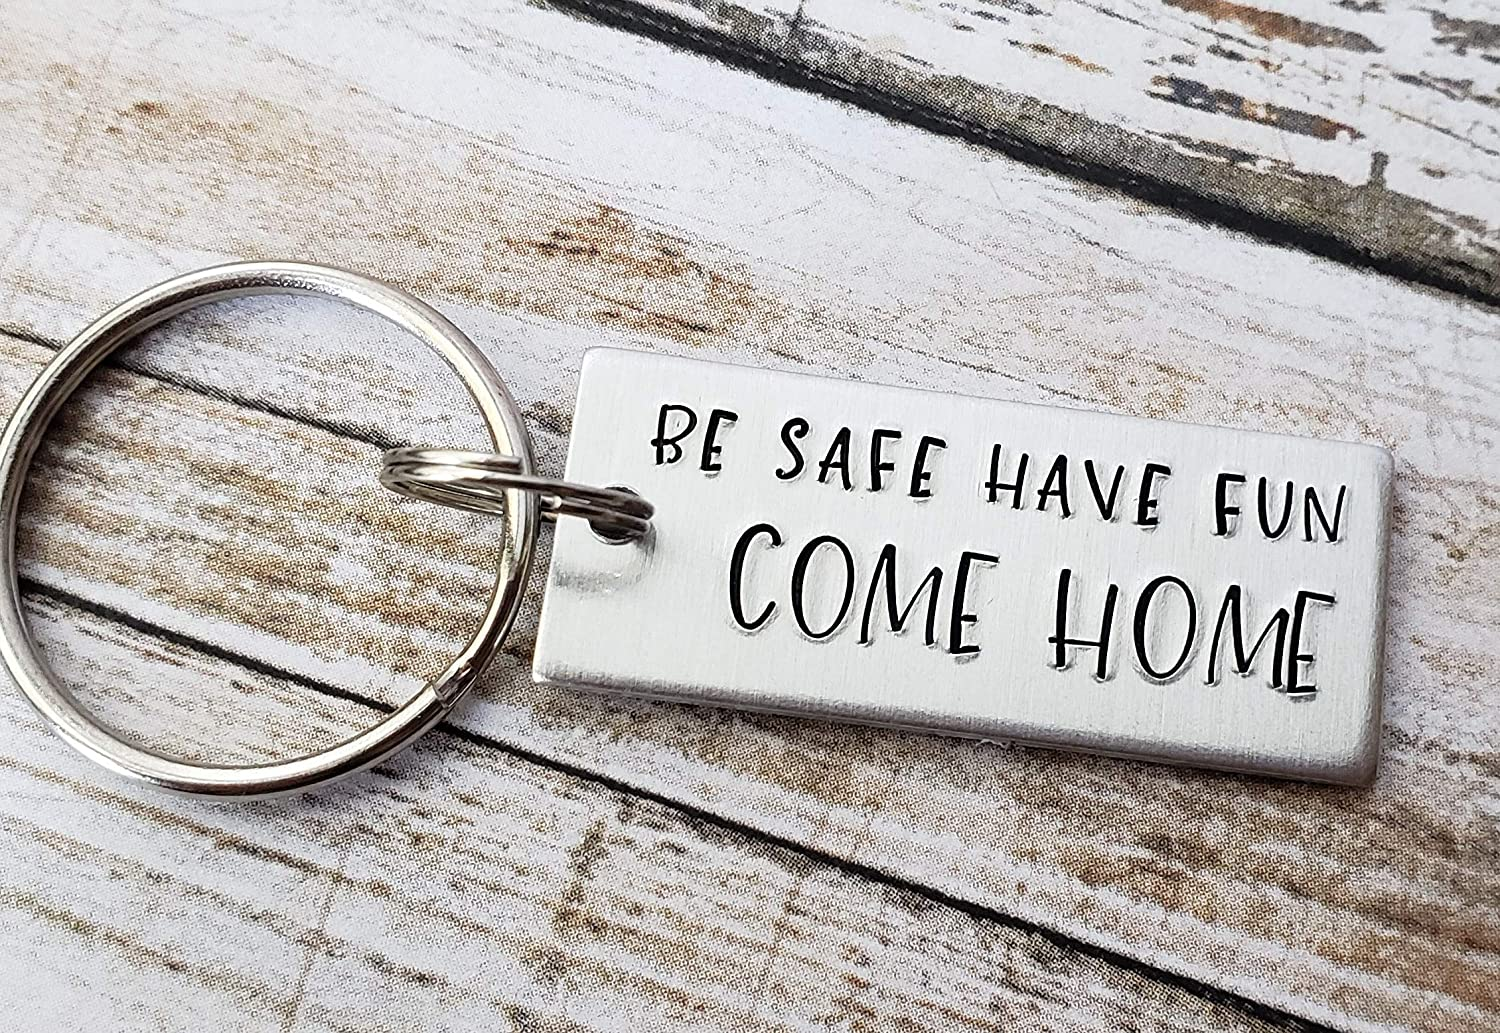 New Driver Key Chain Come Home Teen Birthday Gift Small Gift for Teenager Hand Stamped Keychain